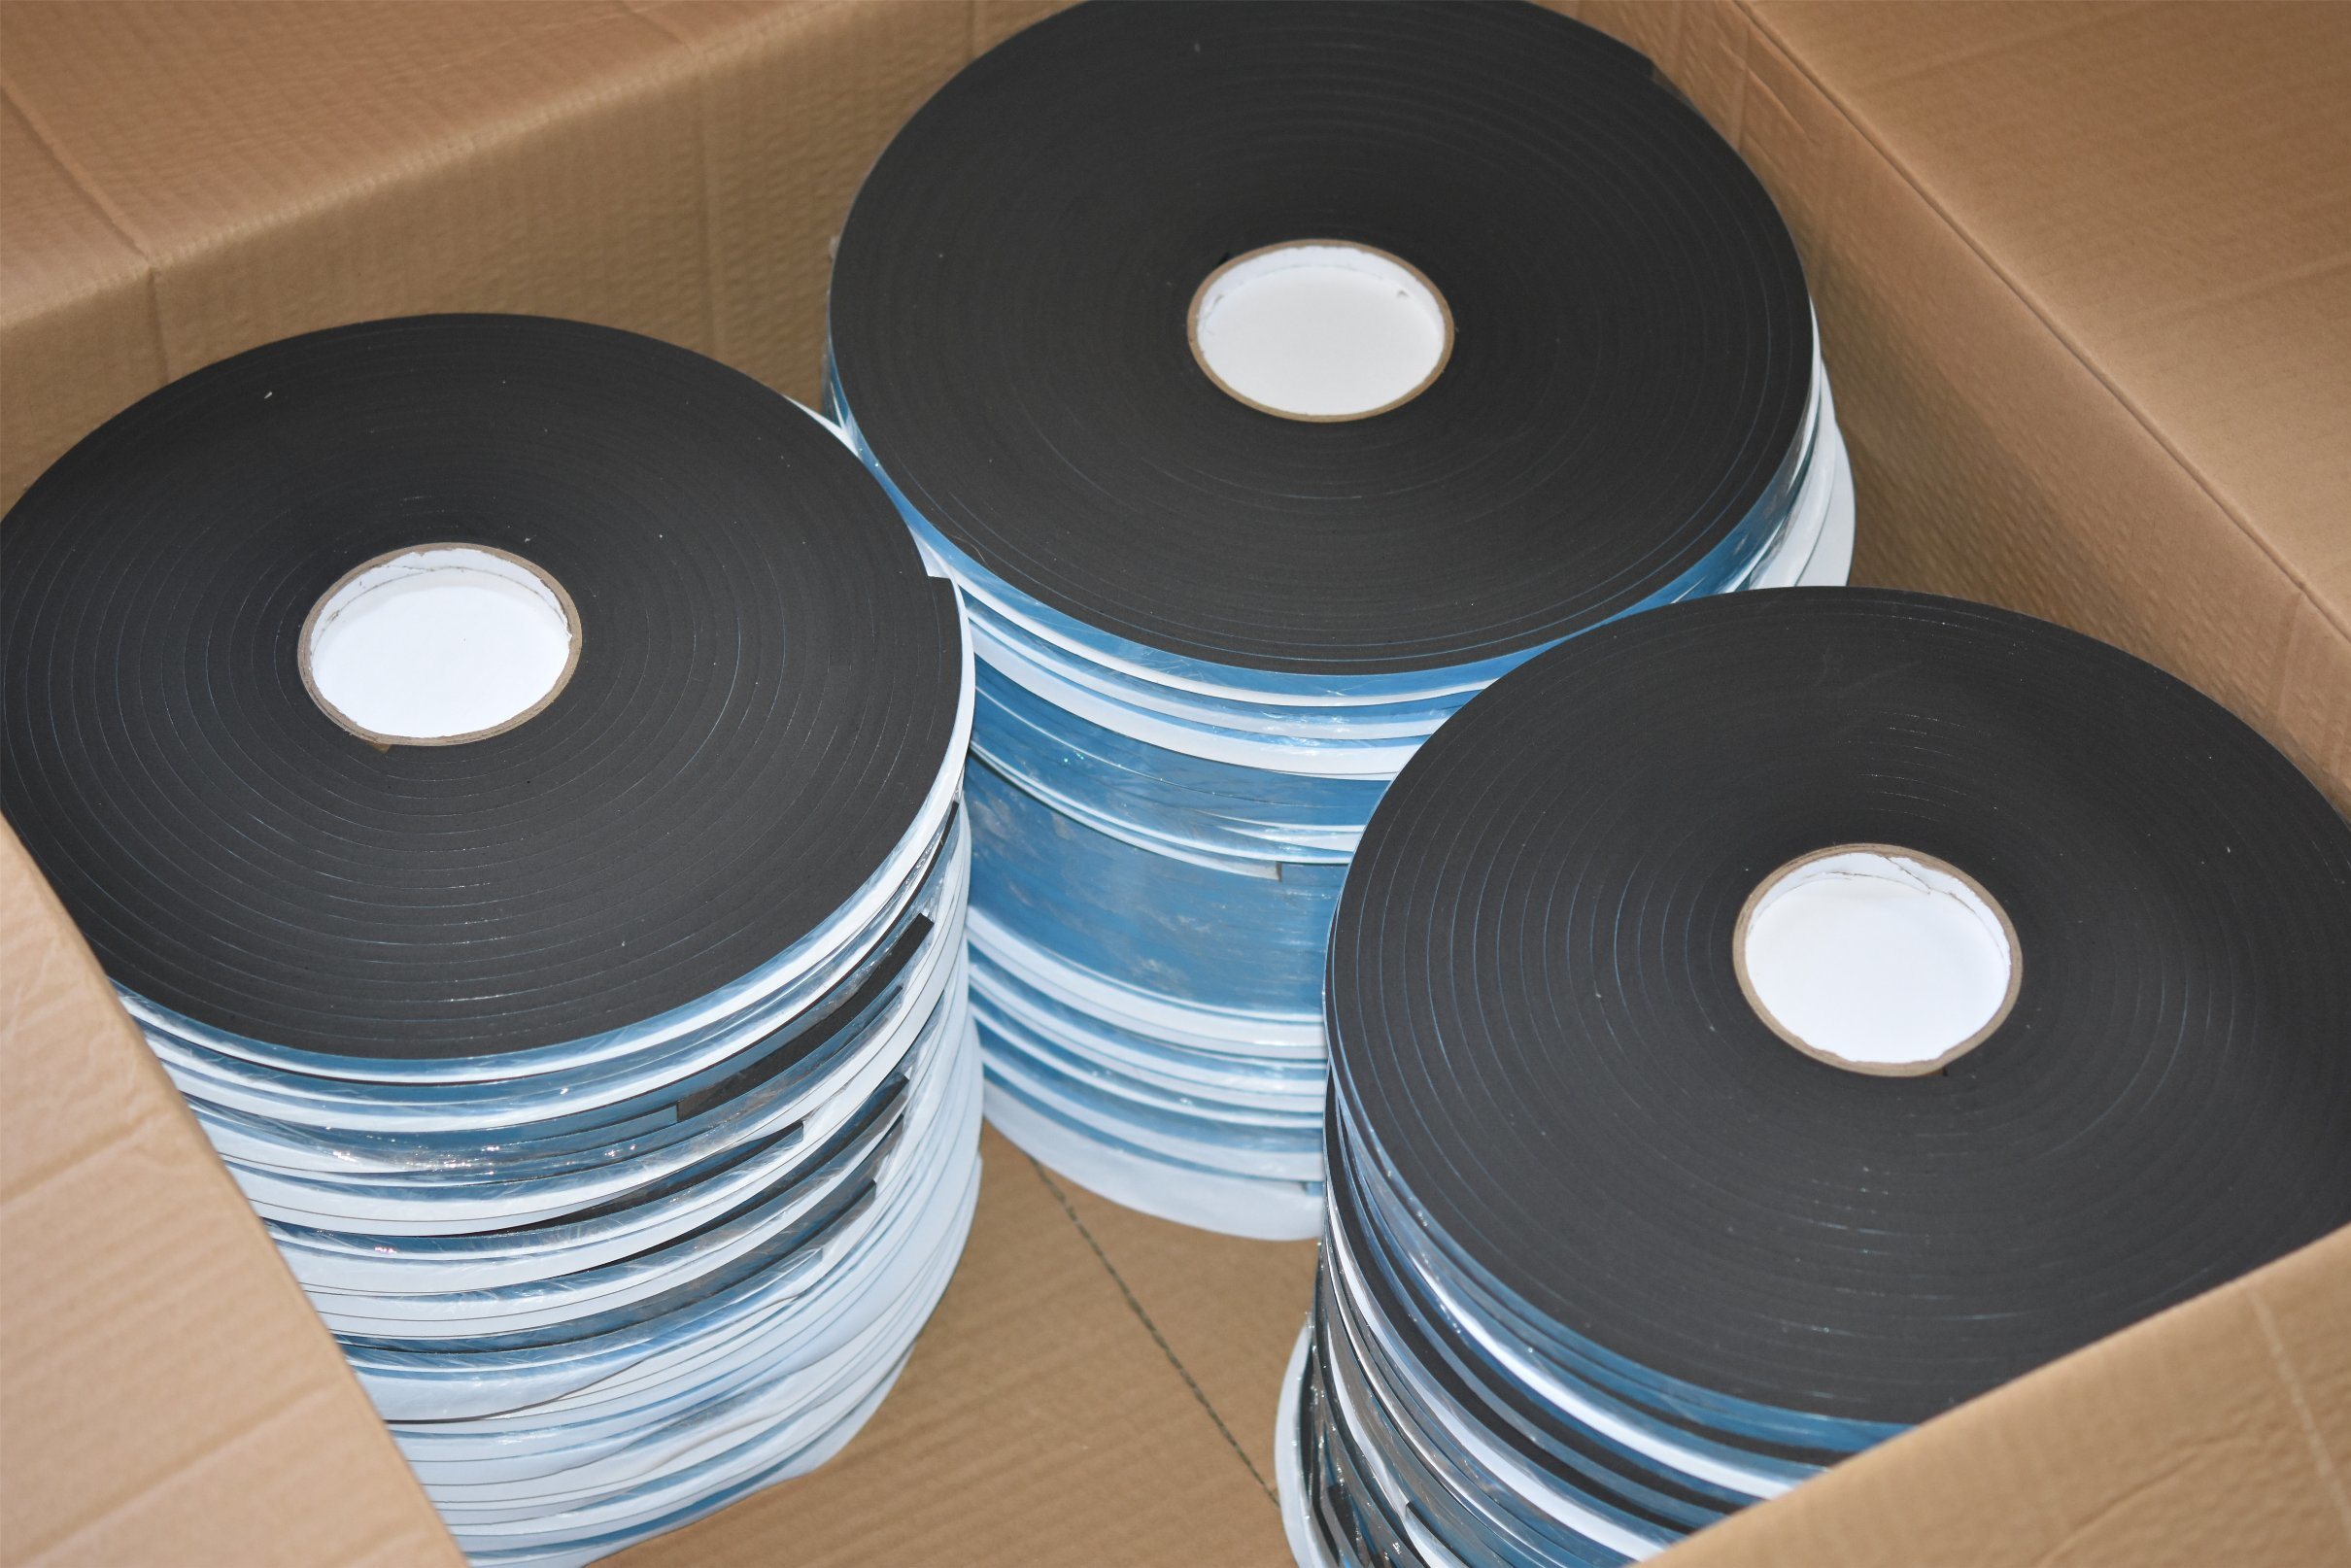 Permanent Bonding Structural Glazing Tape